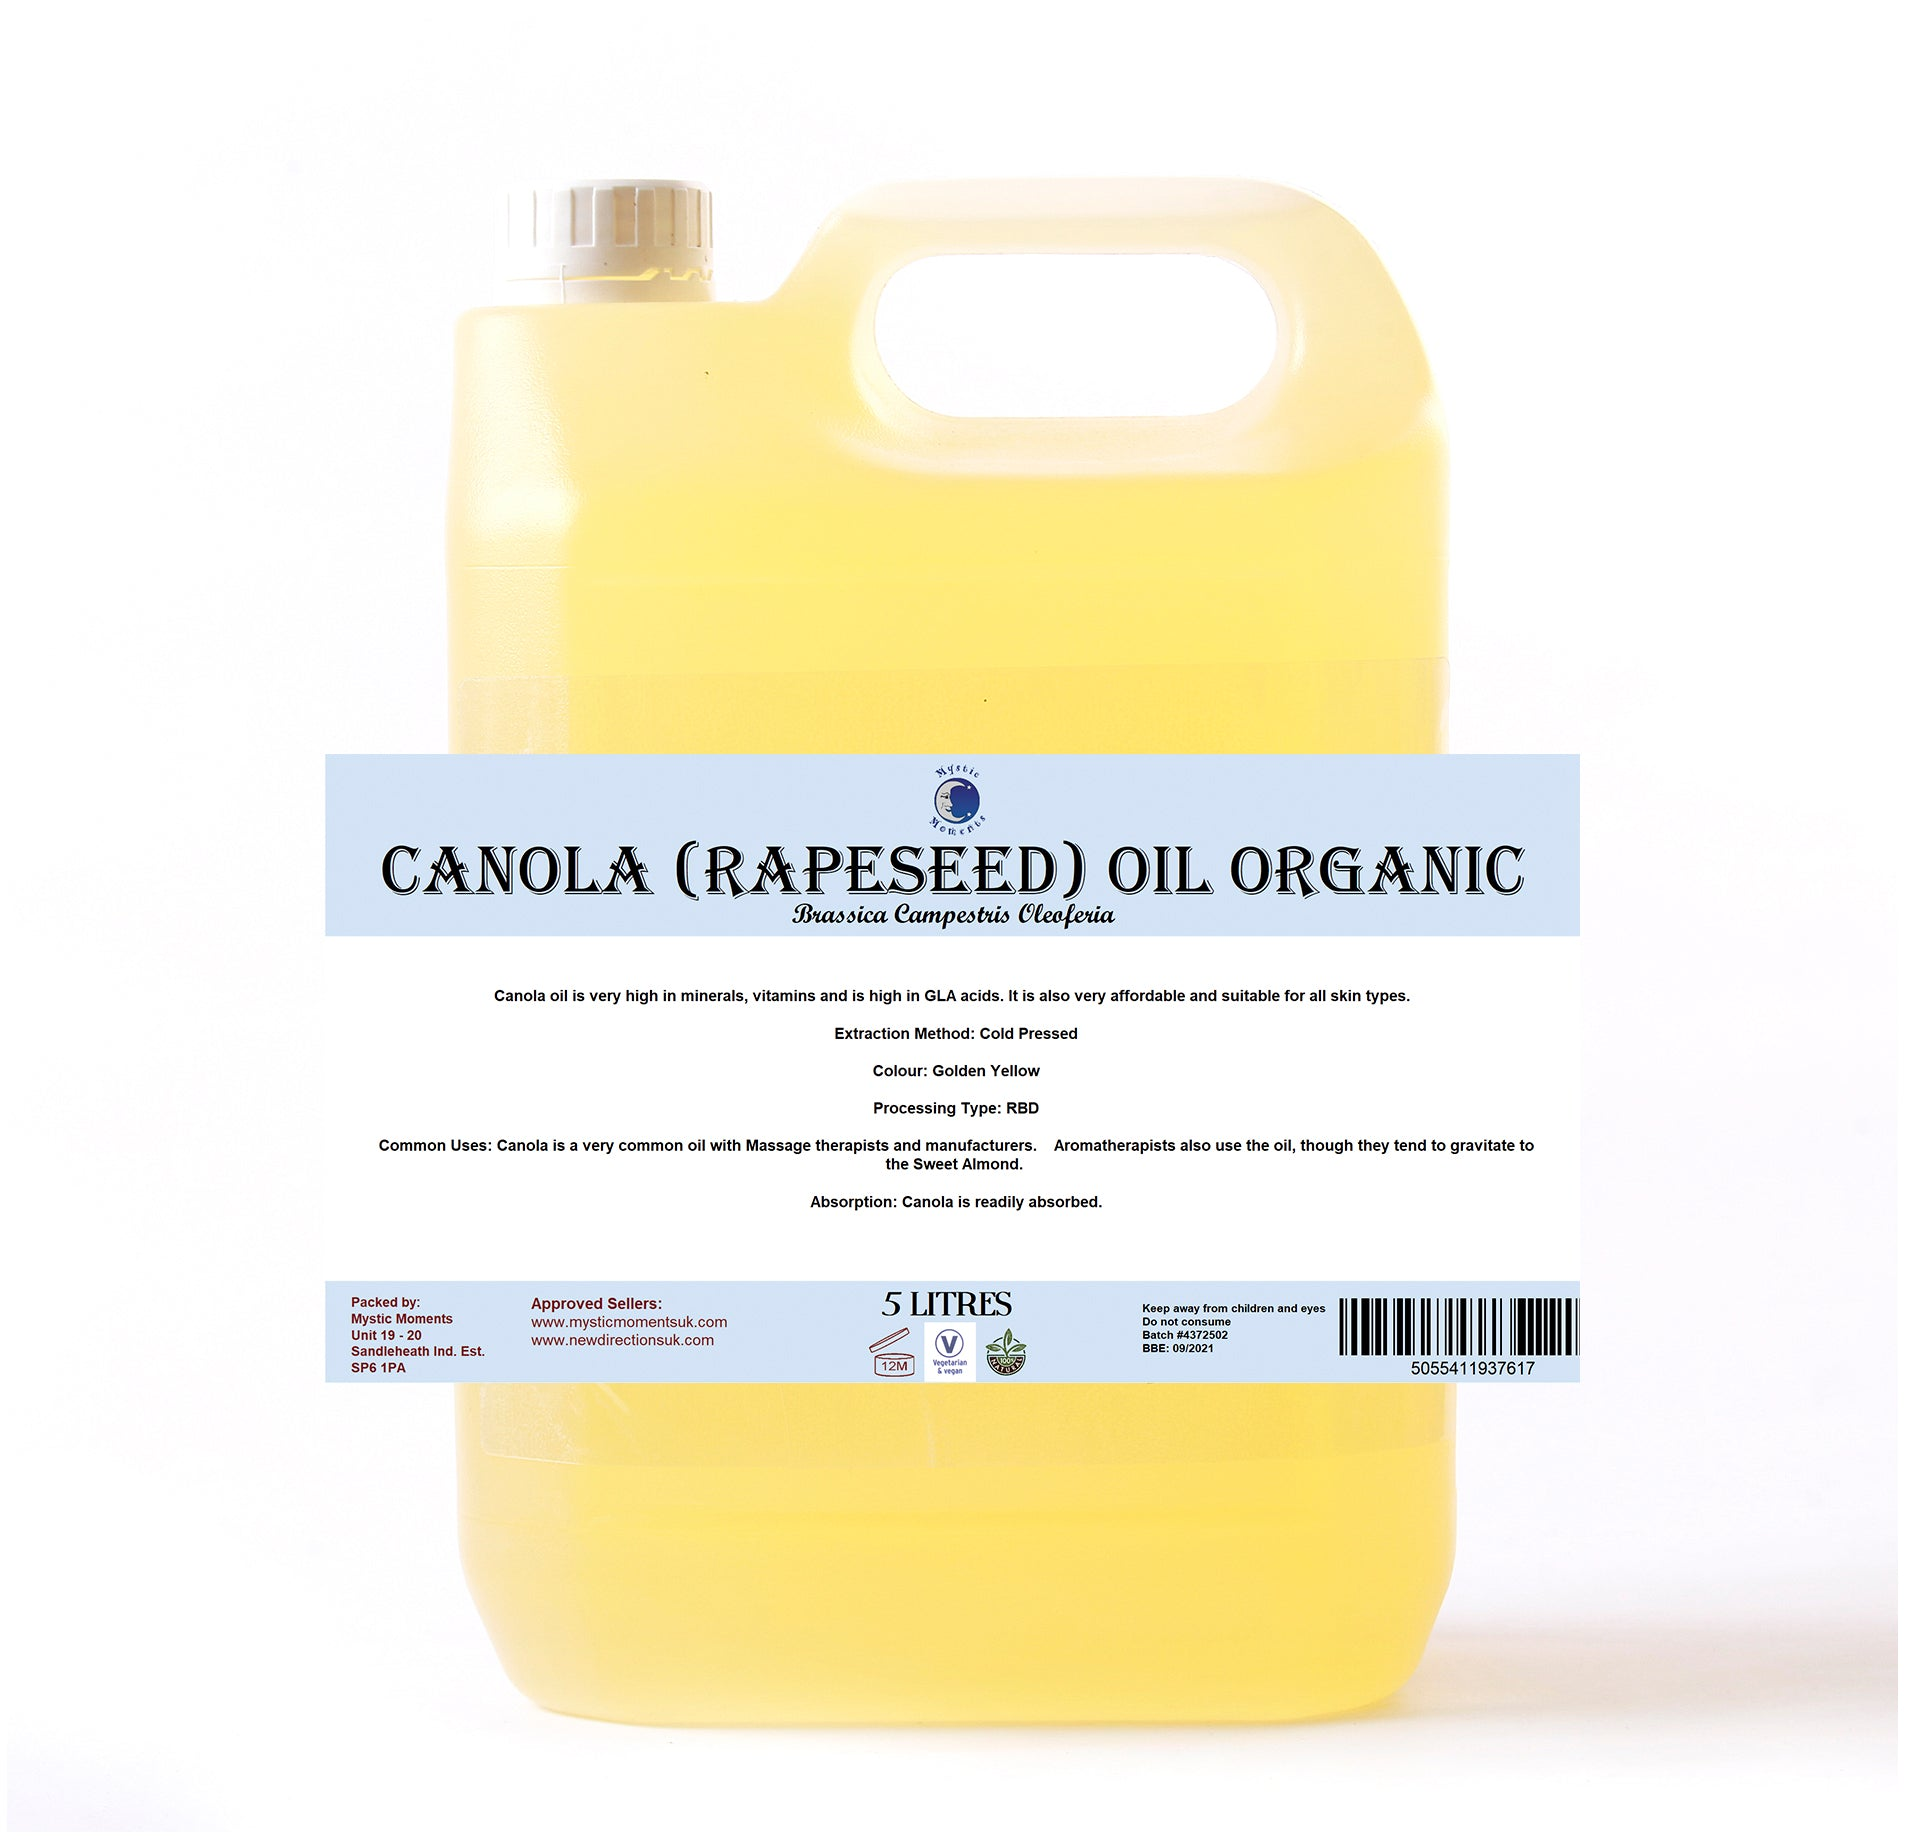 Canola (Rapeseed) Organic Carrier Oil